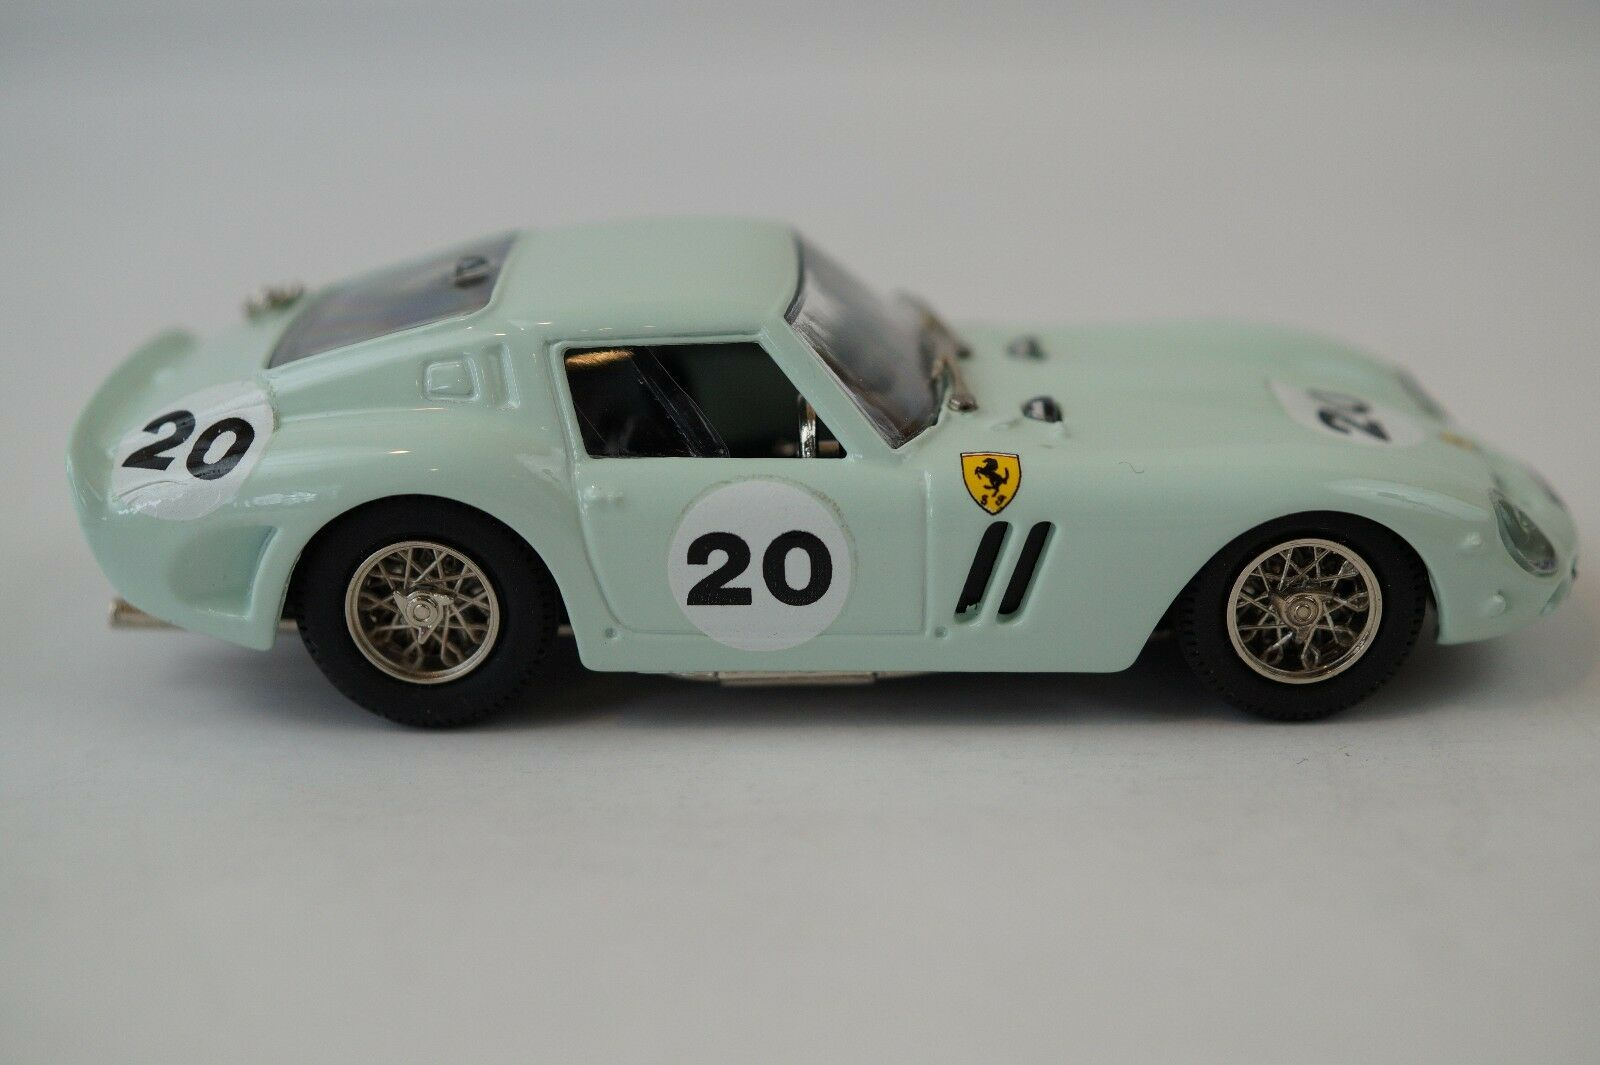 Ferrari 250 GTO LeMans 1 43 scale -1962 - Box Models